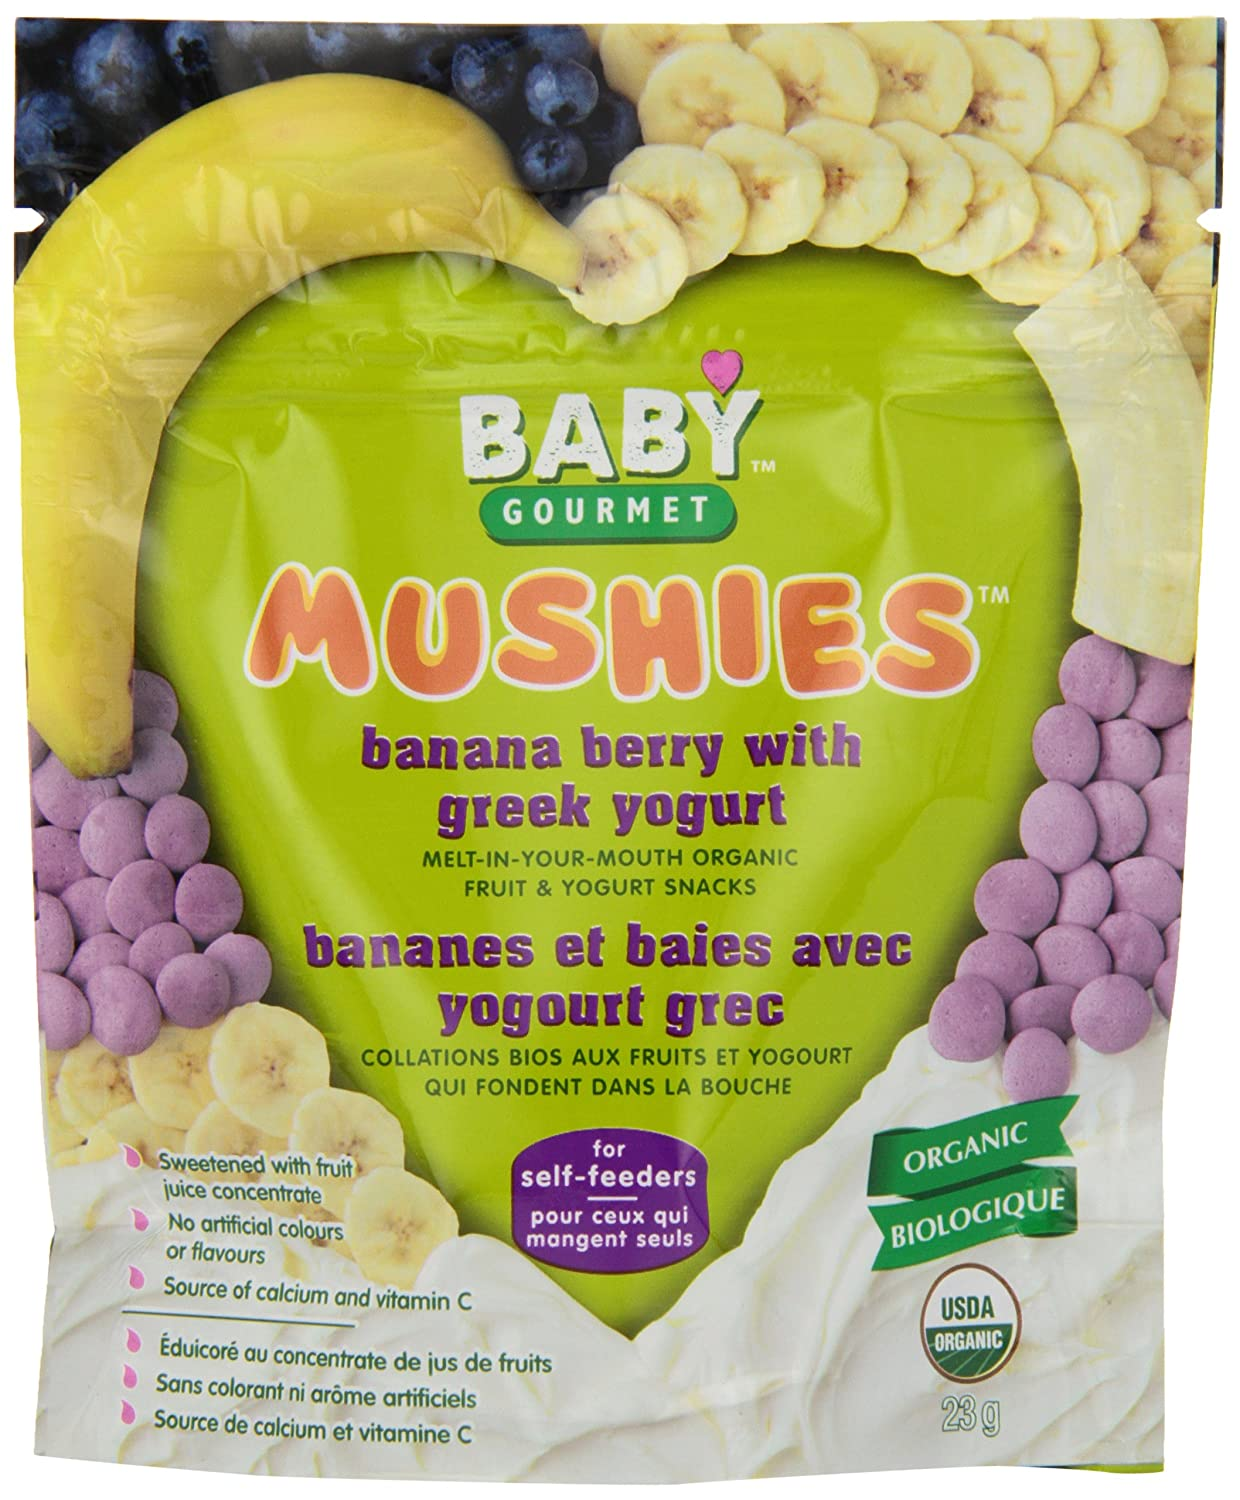 Baby Gourmet Mushies Banana Berry with Greek Yogurt, 8-Pack Baby Gourmet Foods Inc MBBGYOGCSCD0008